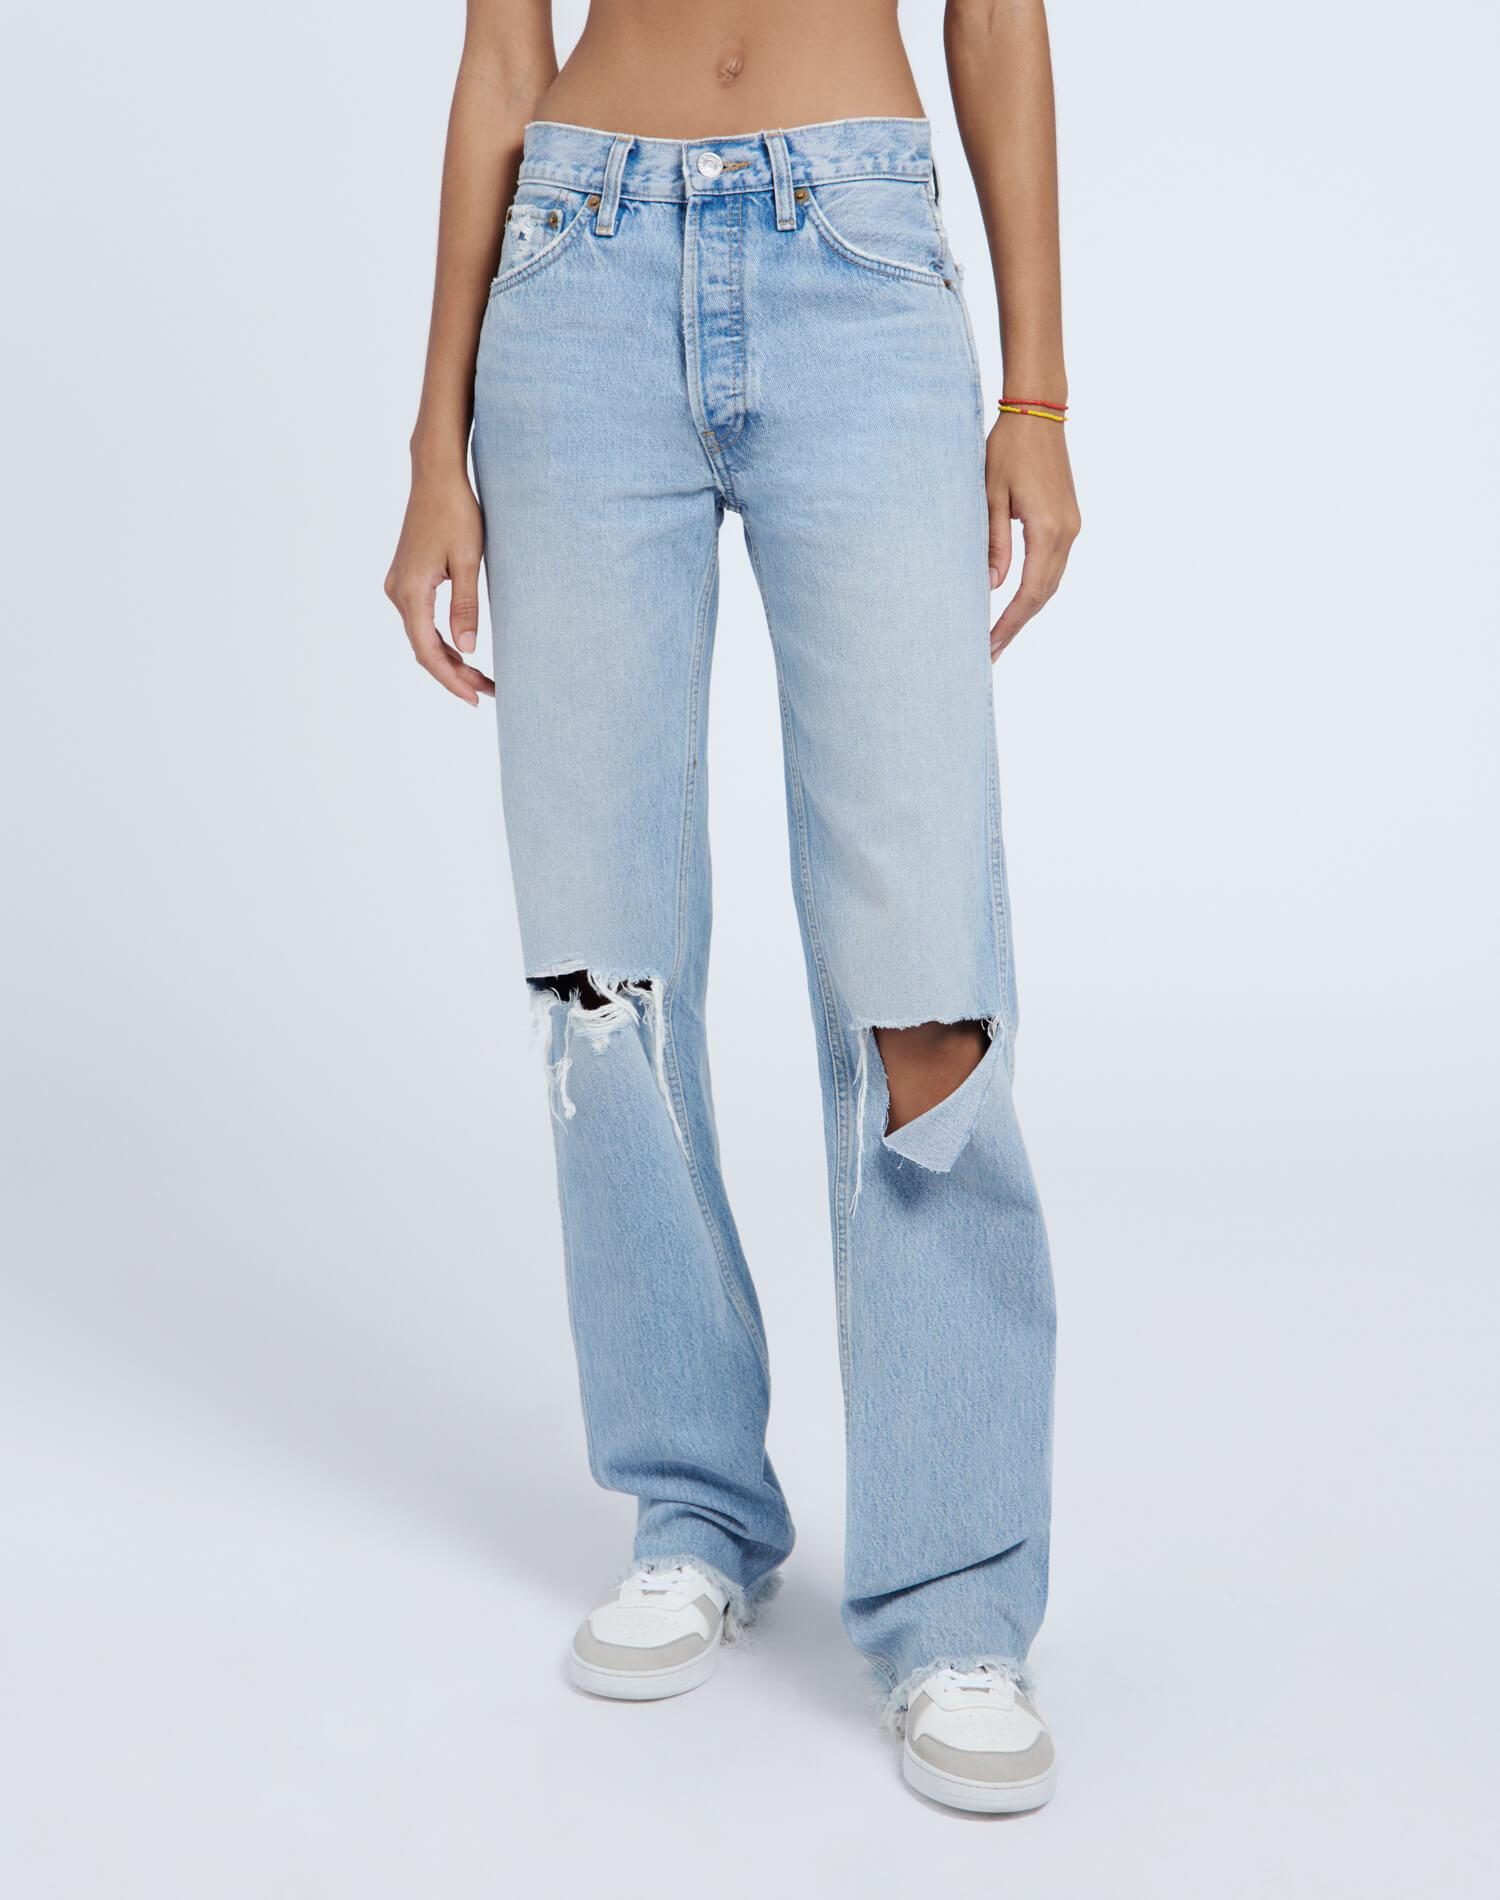 High Rise Loose - Breezy Indigo with Rips